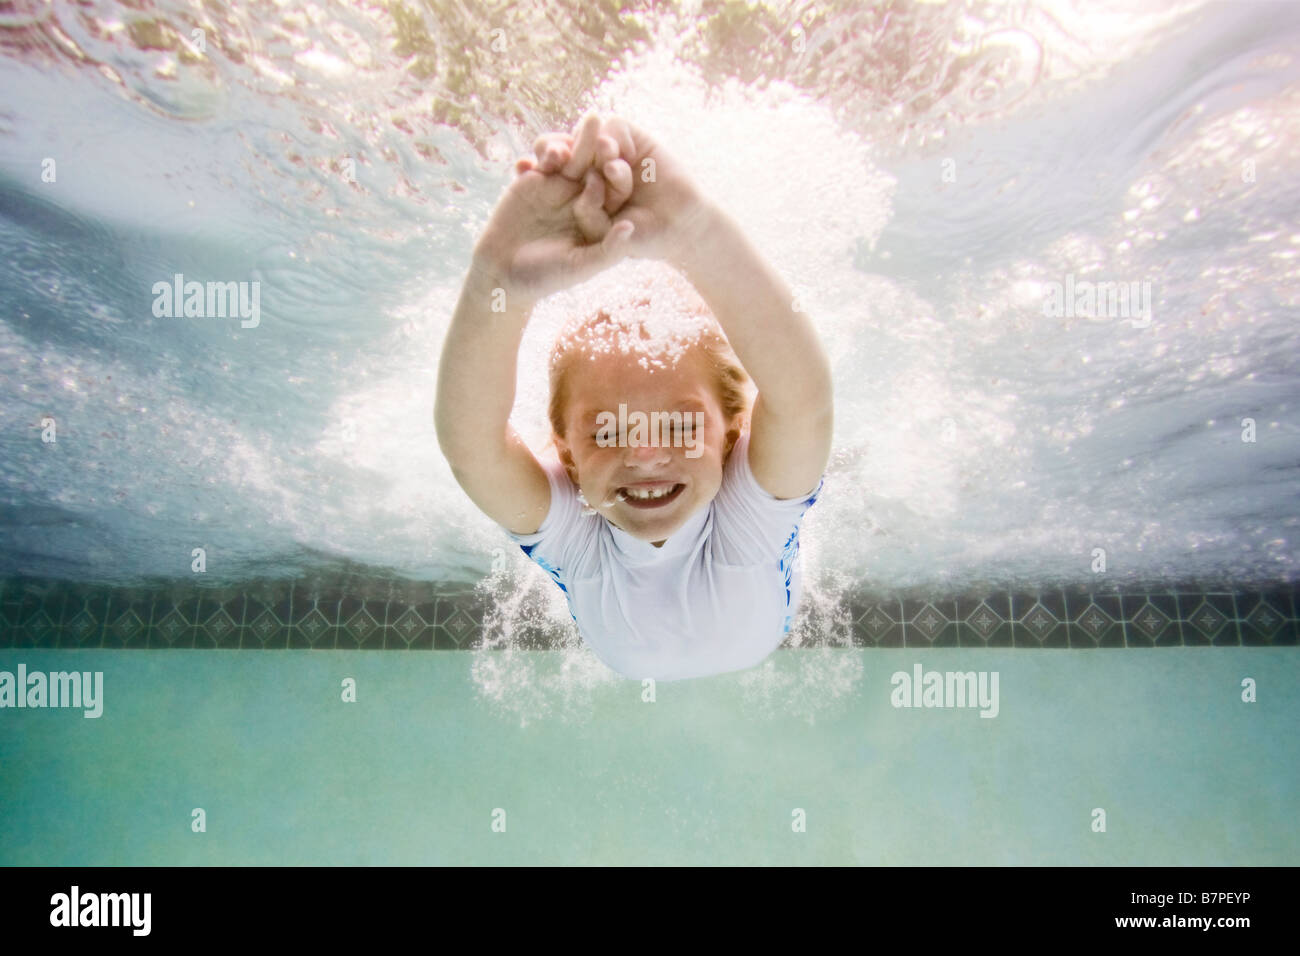 Girl Diving In Swimming Pool Stock Photo Royalty Free Image 22007658 Alamy